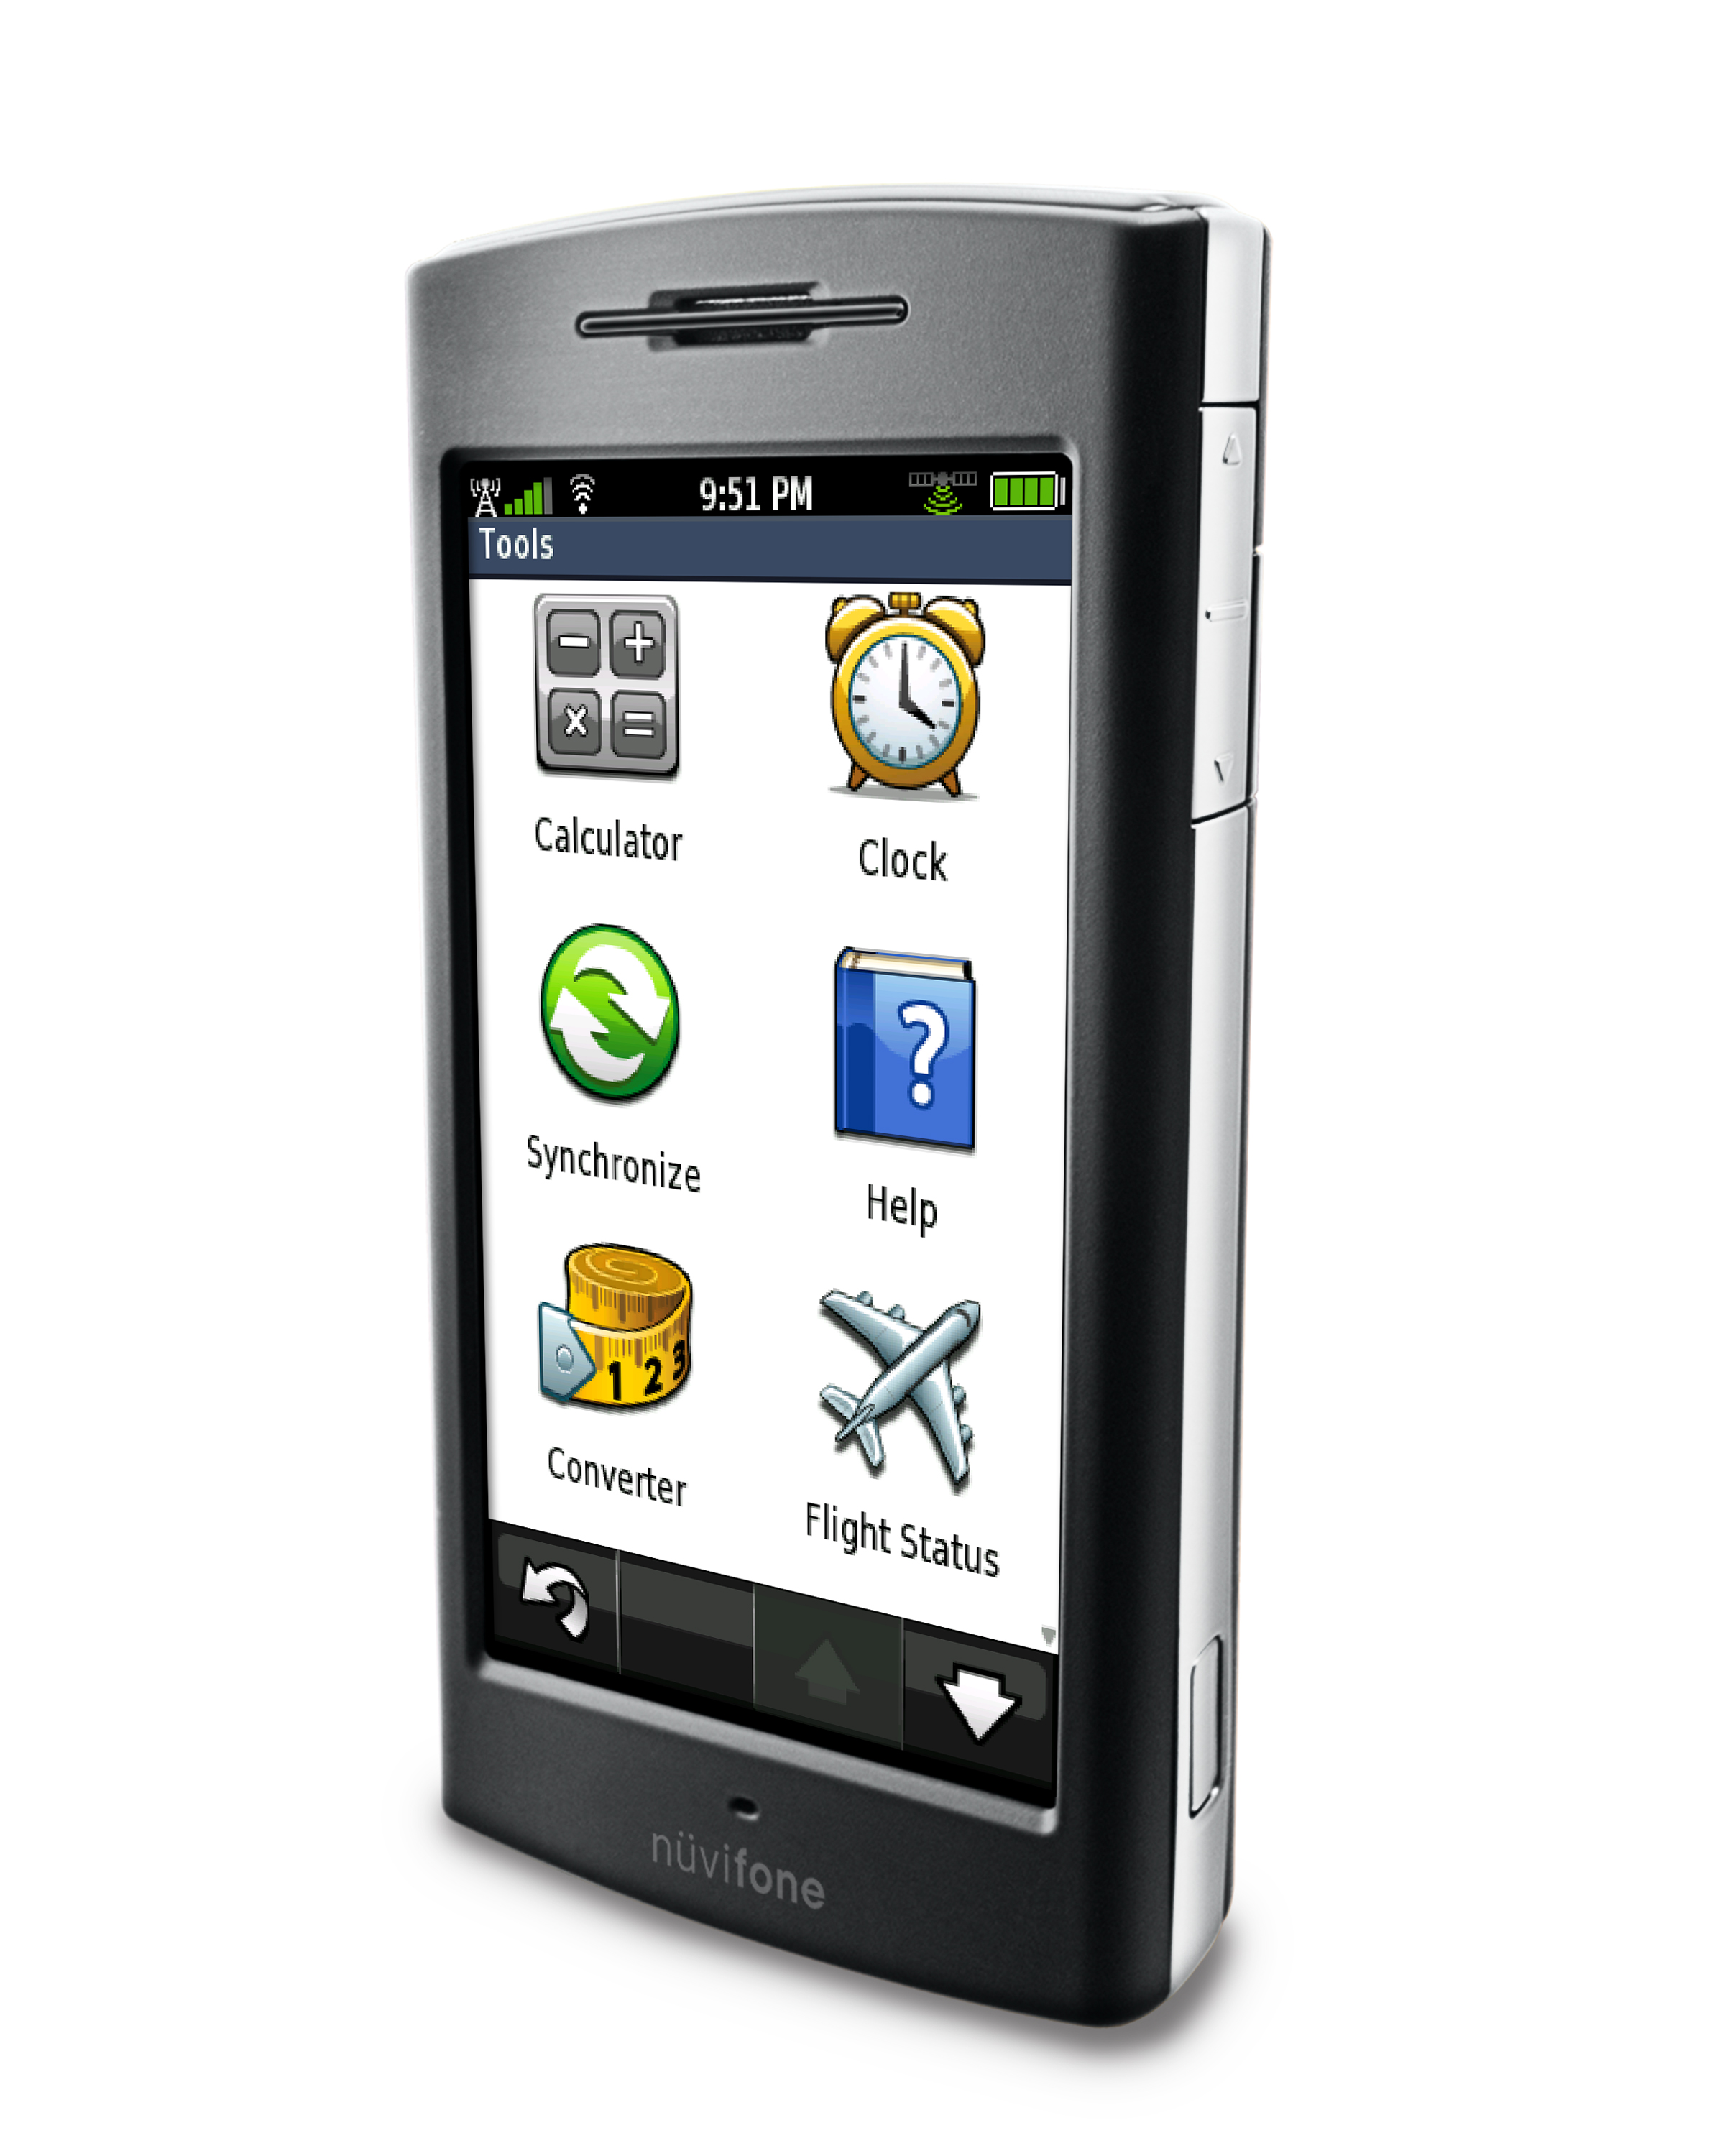 Asus Nuvifone G60 Image